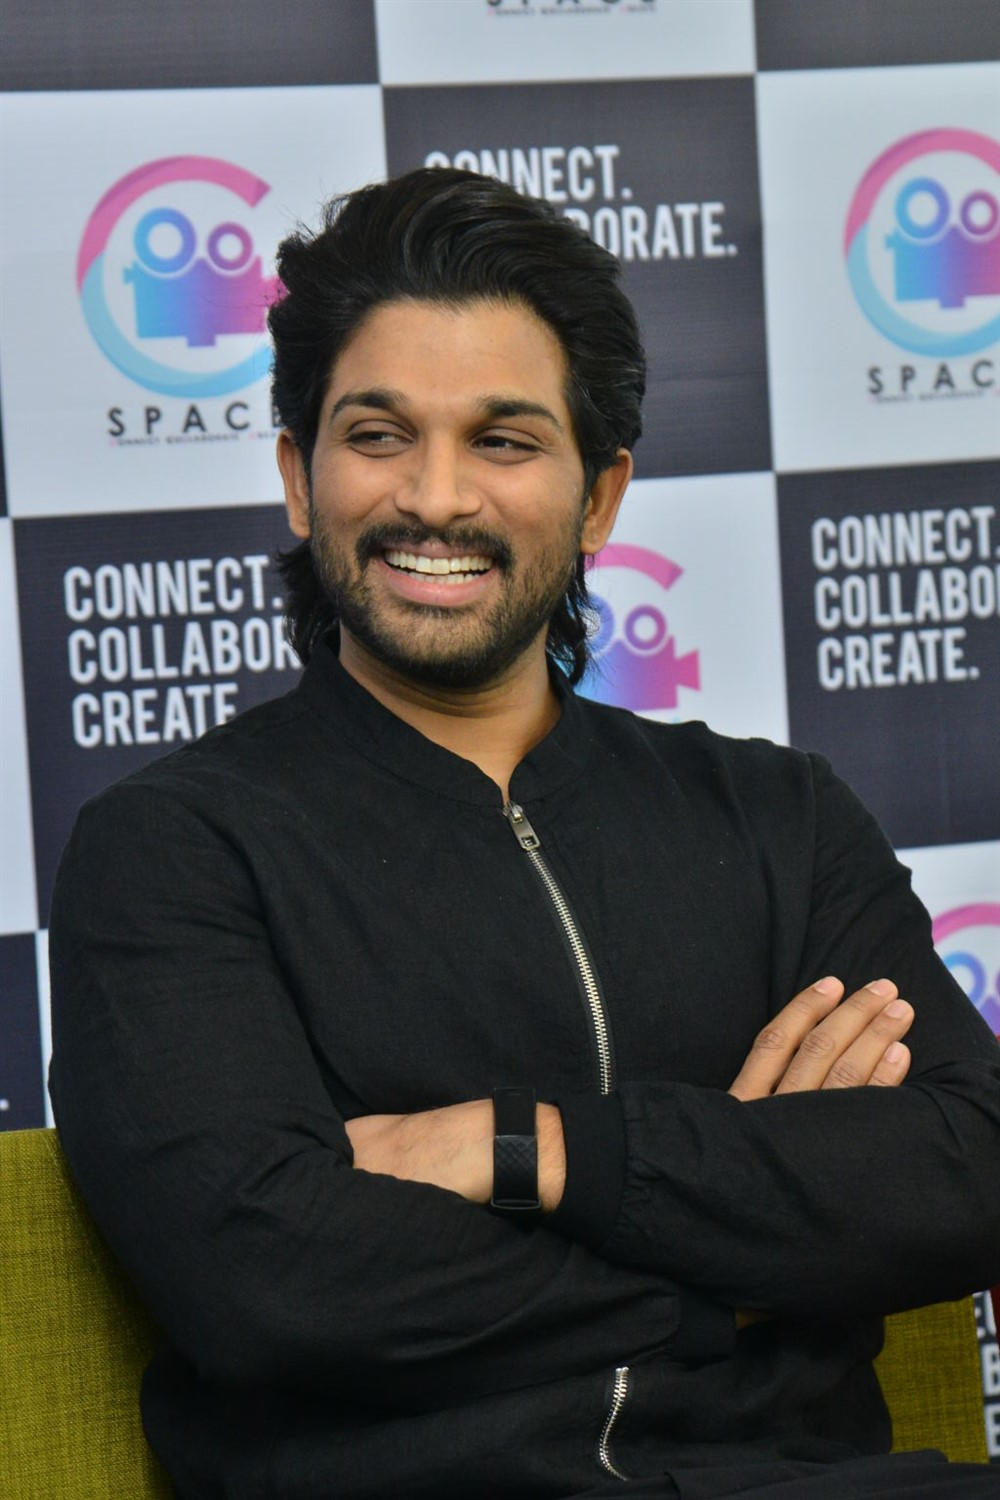 Allu Arjun launches Navdeep C-Space Photos